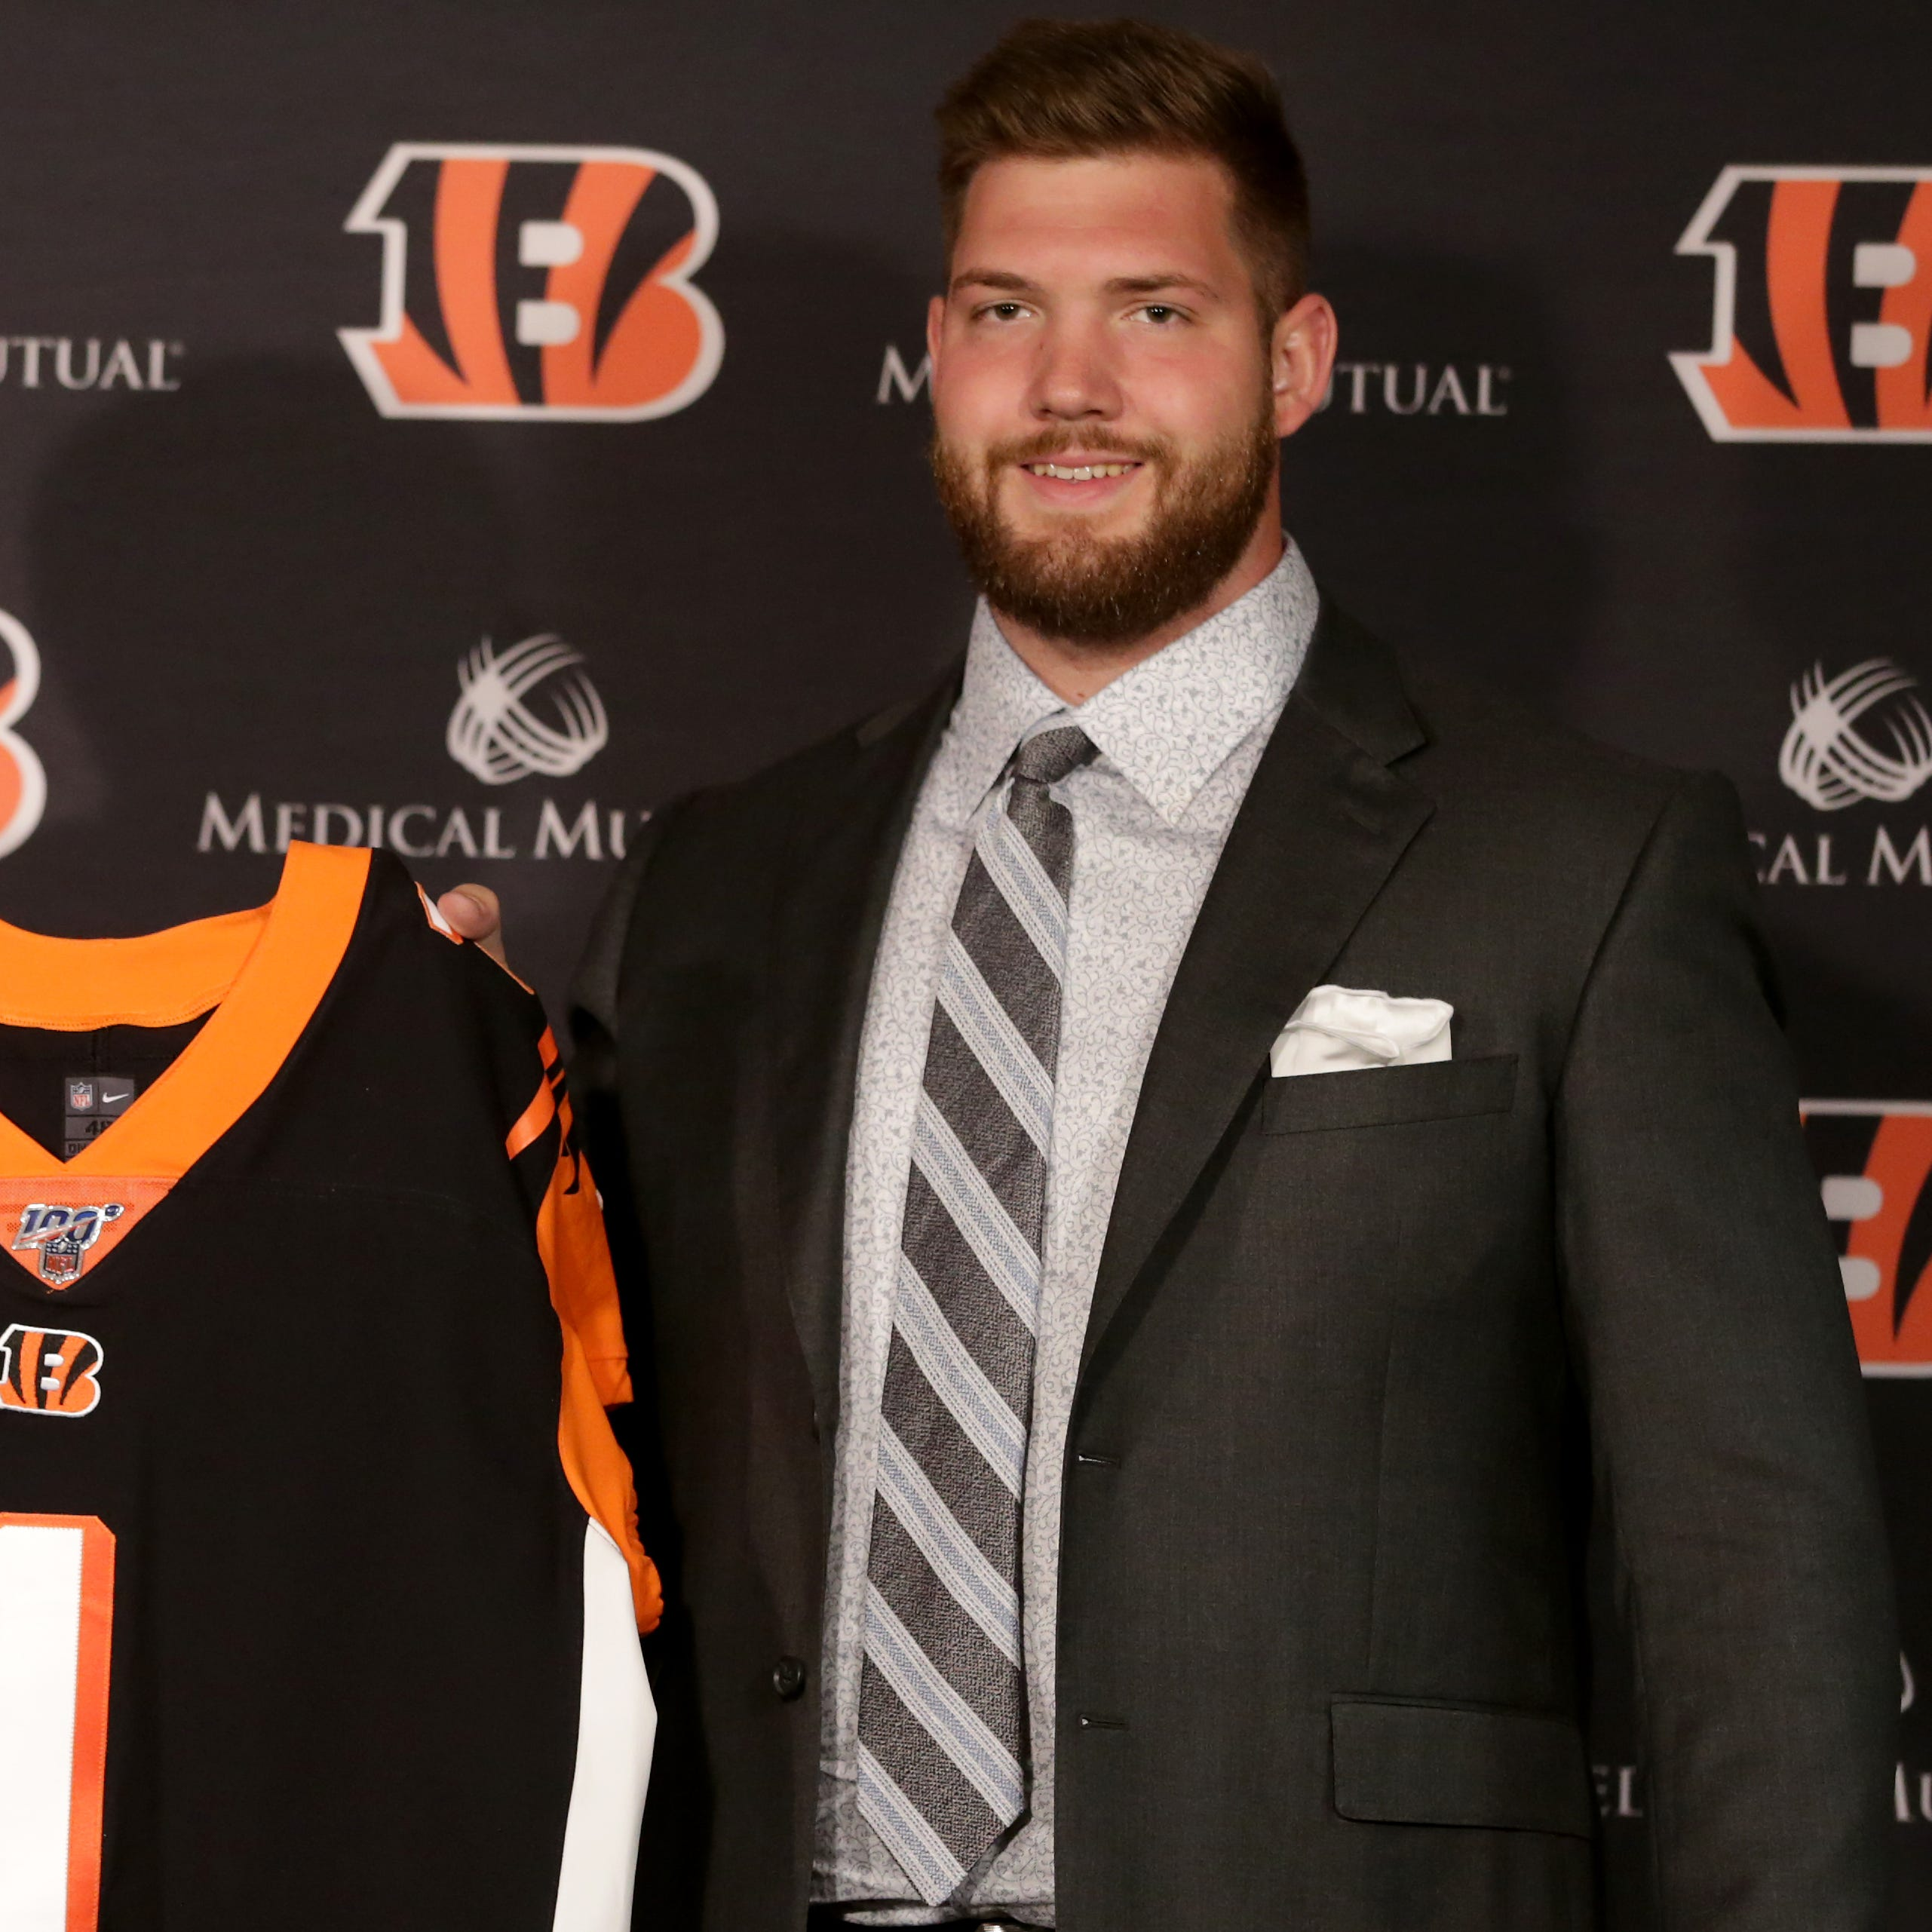 Letter: Bengals coach Zac Taylor's Draft Day apparel appalling